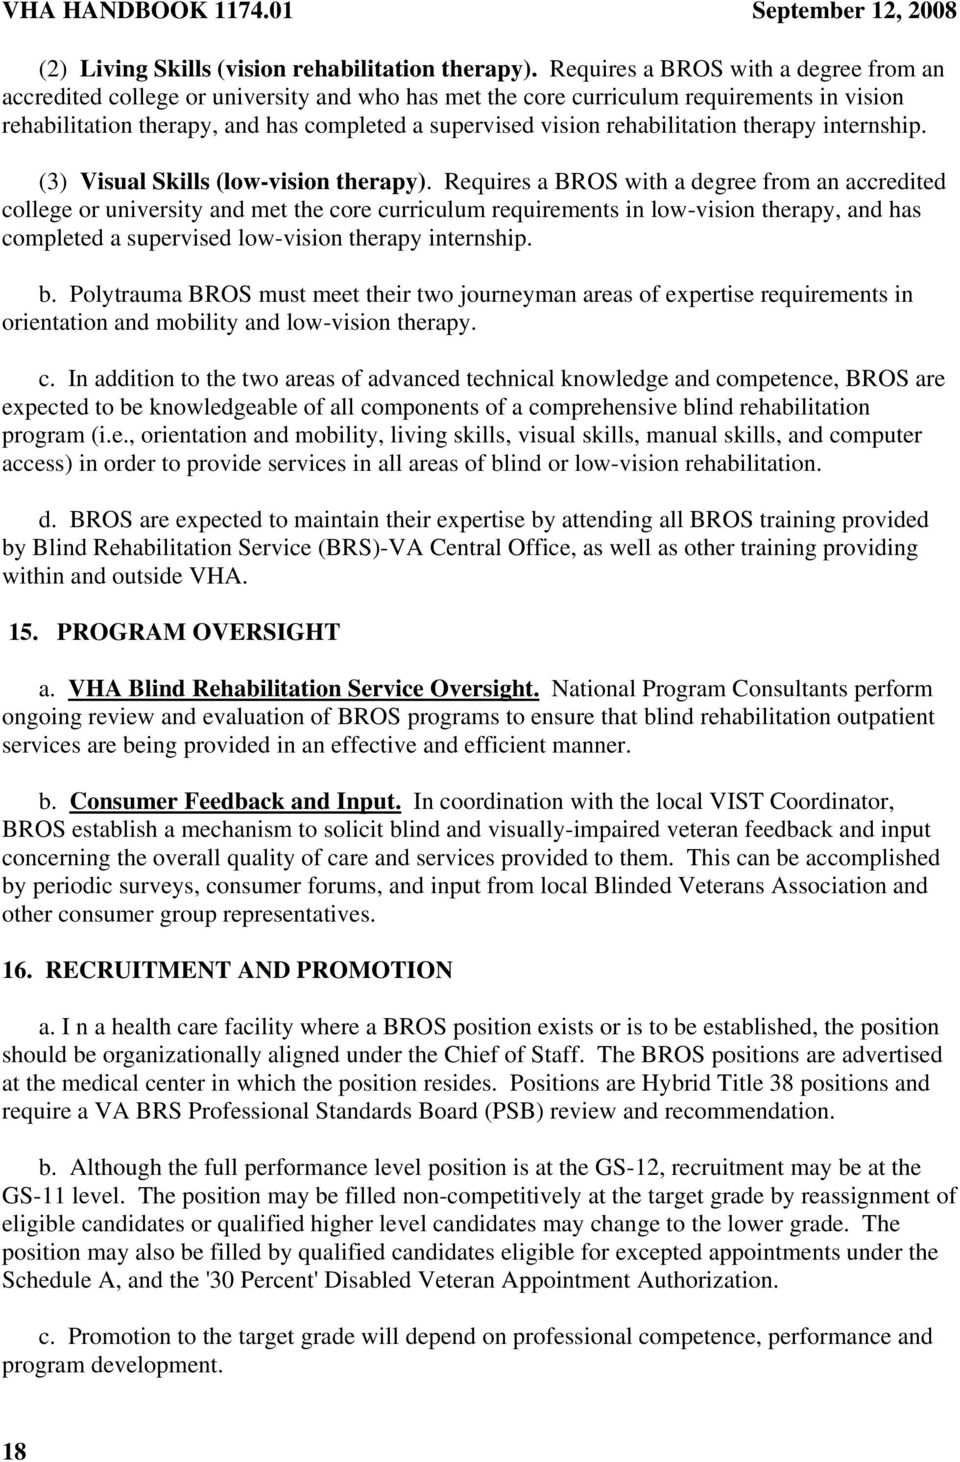 rehabilitation therapy internship. (3) Visual Skills (low-vision therapy).